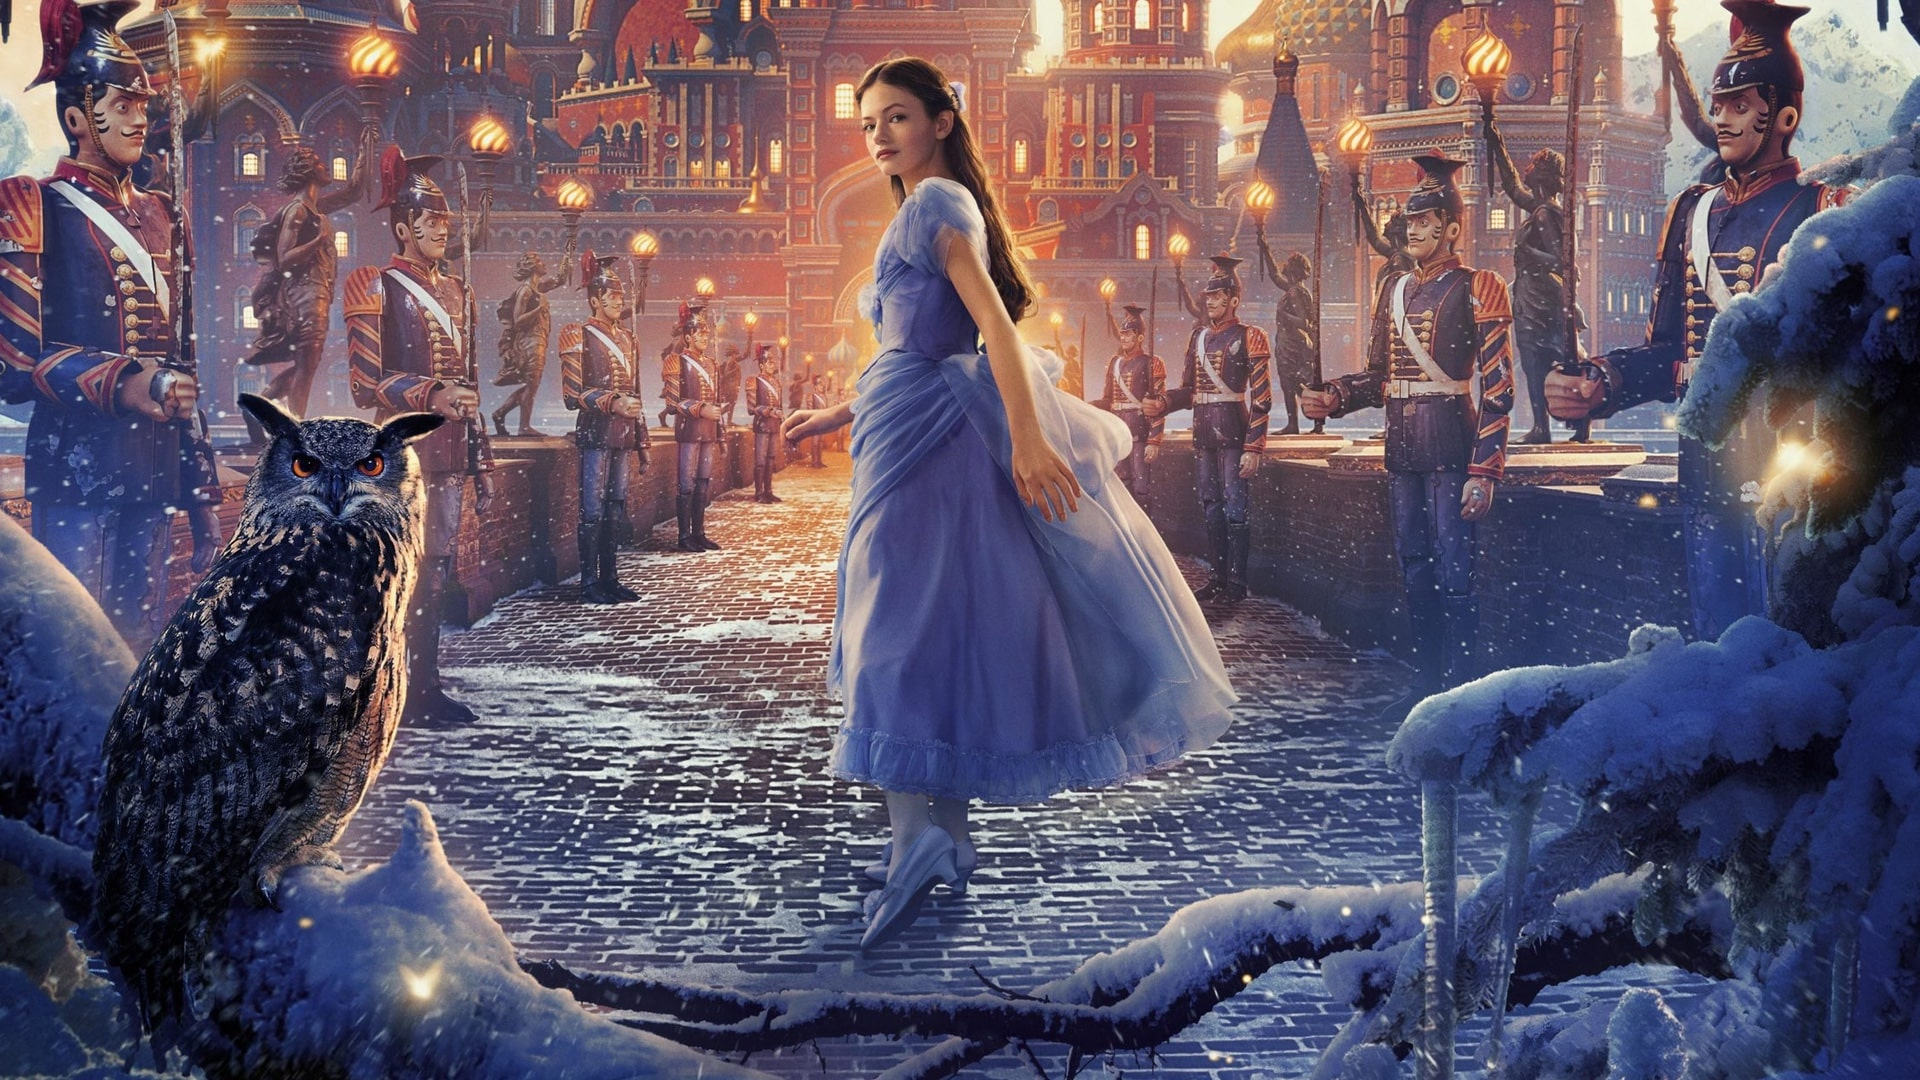 The Nutcracker and the Four Realms Pictures